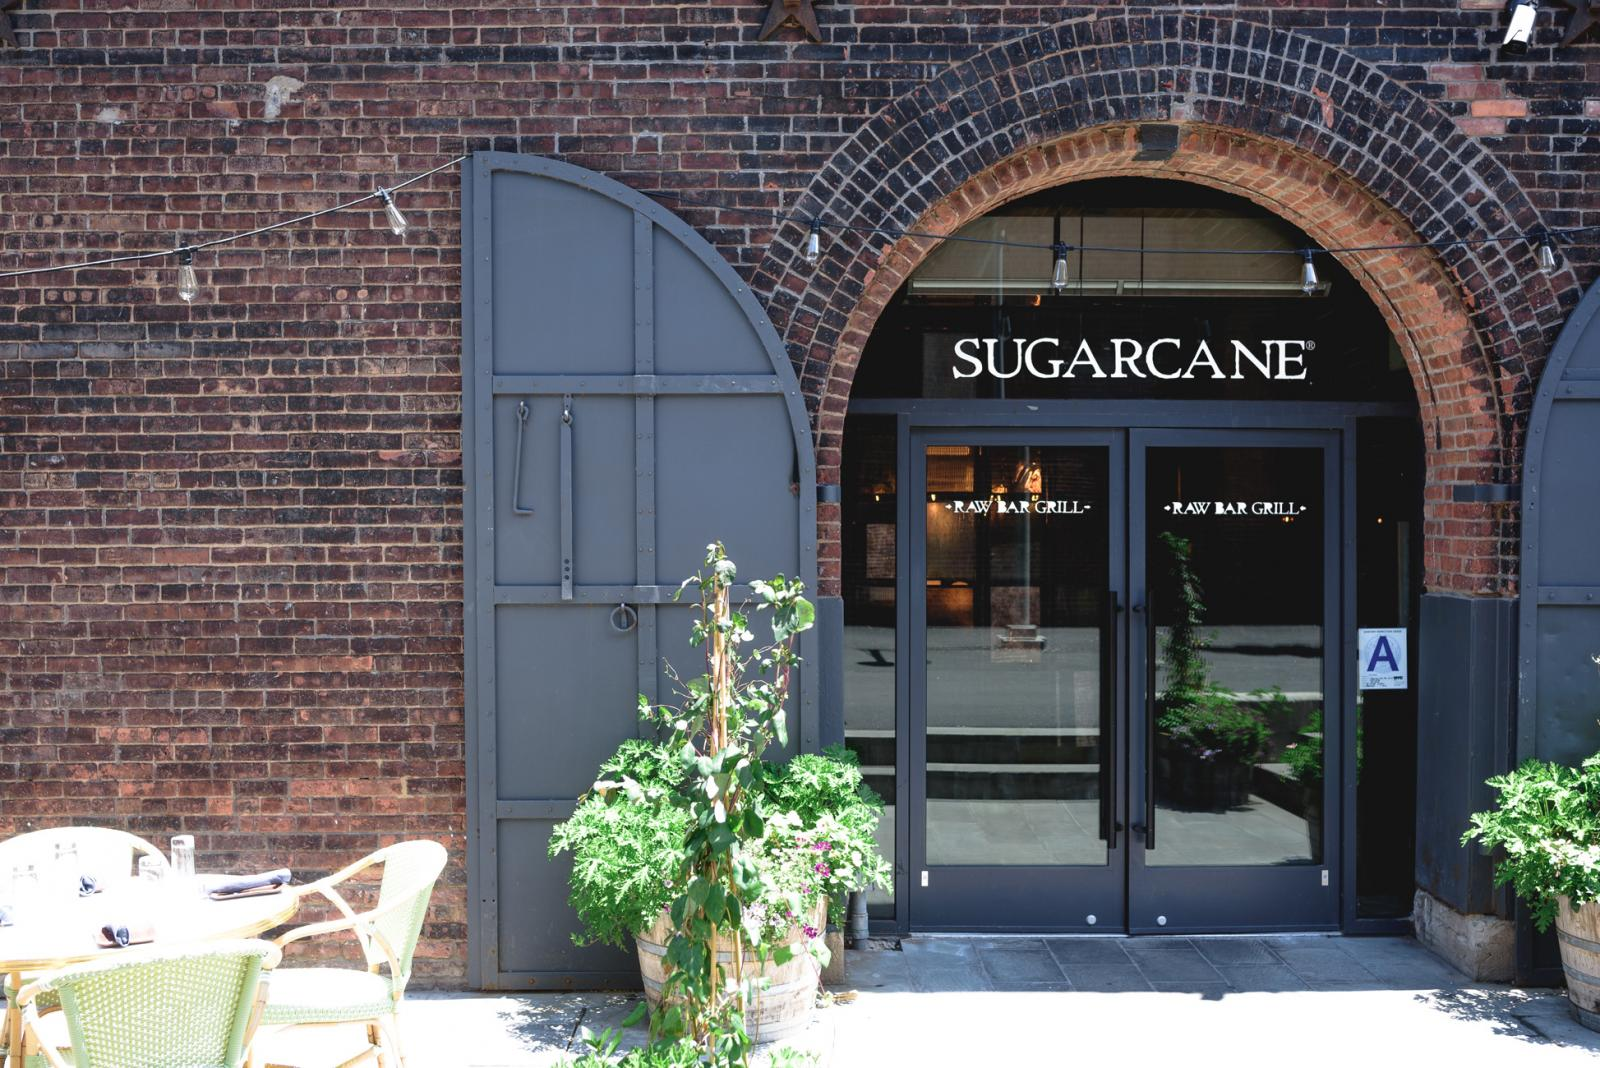 SUGARCANE raw bar grill Restaurant in DUMBO